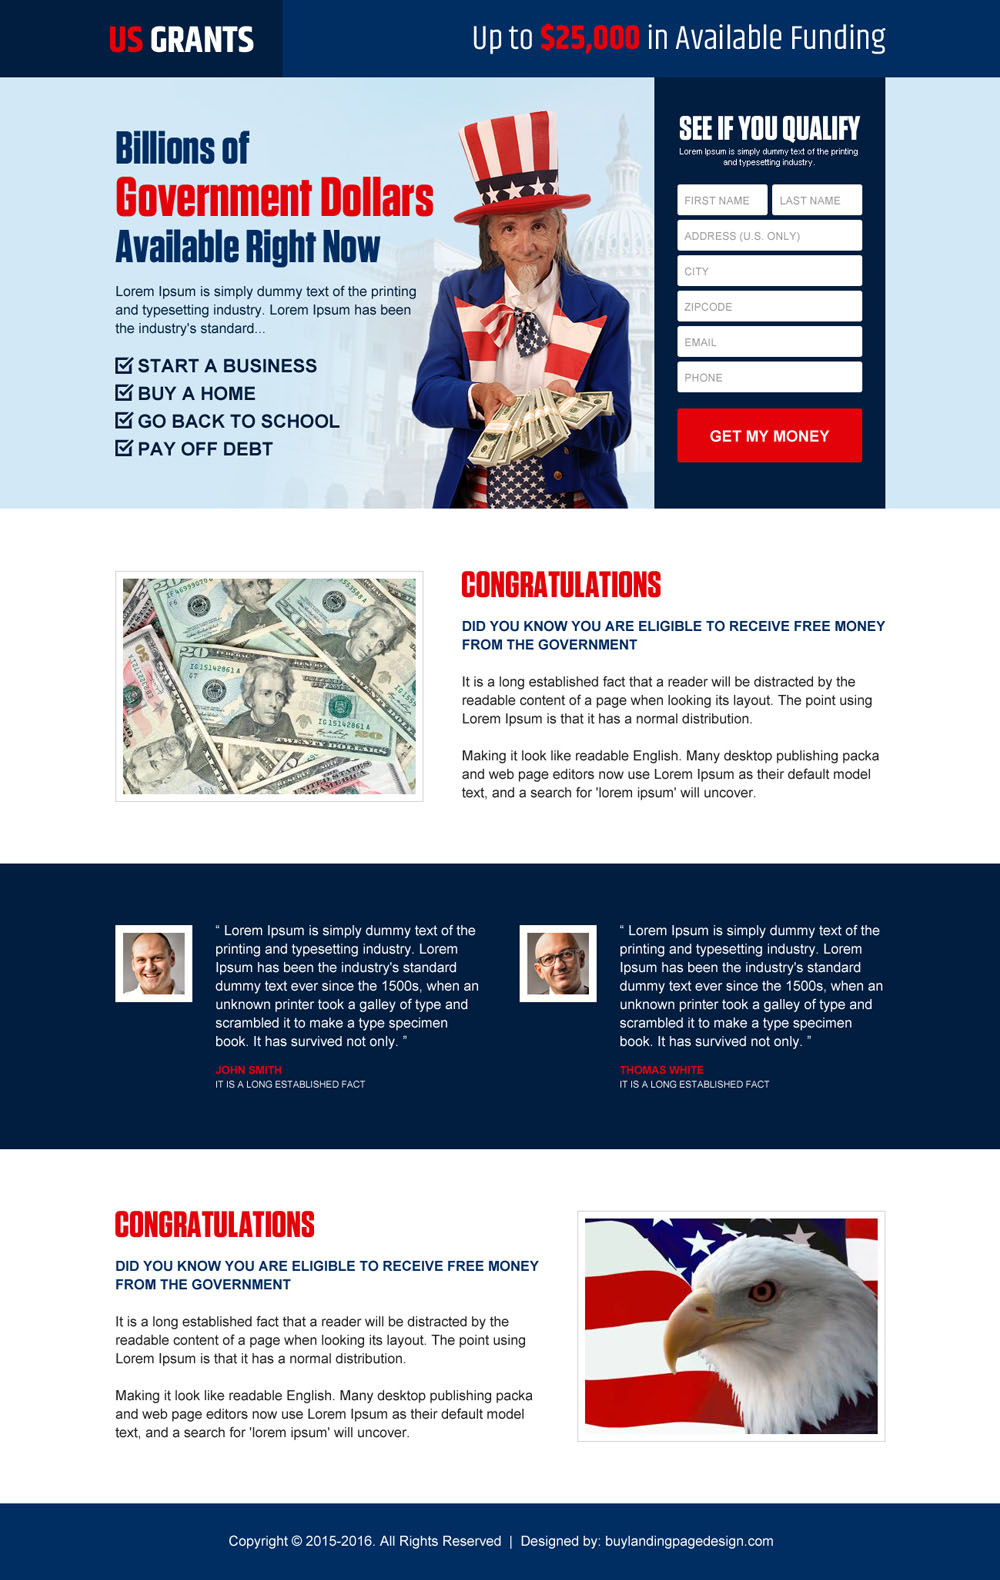 get-your-government-grants-money-see-if-you-qualify-lead-gen-landing-page-016